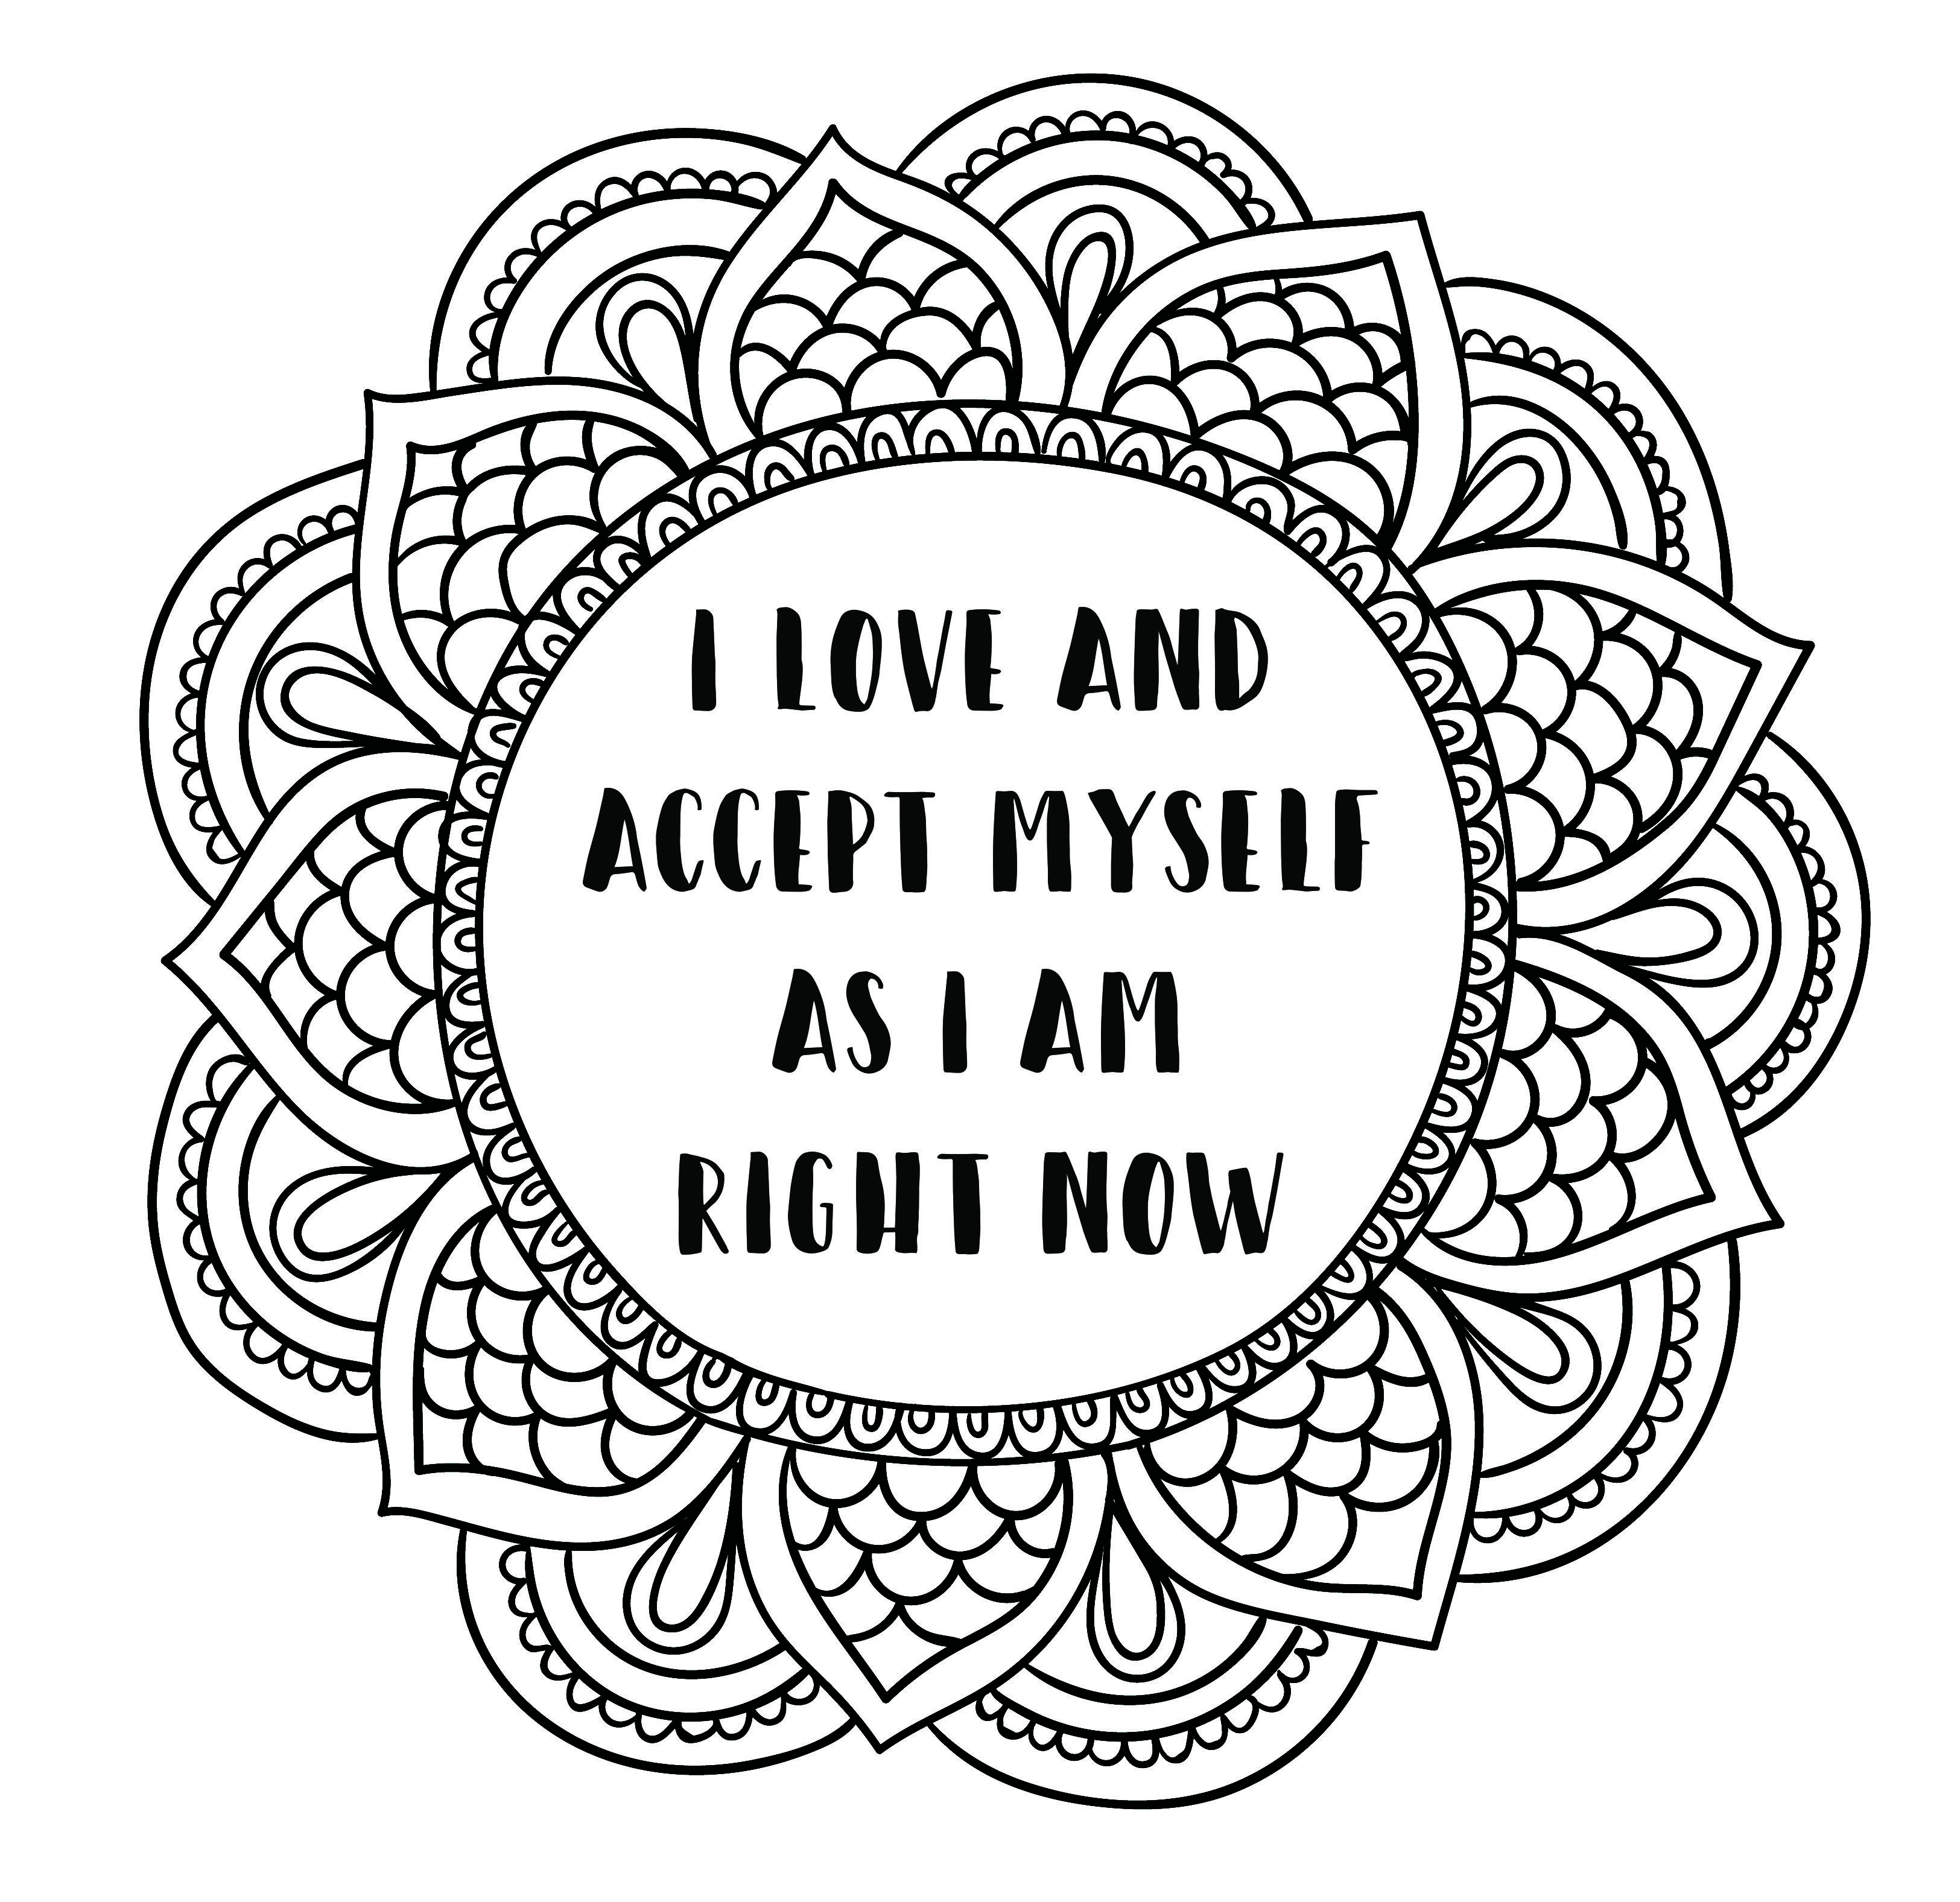 Mandala Style Coloring Page Printable Self Love Affirmation Created By Me Designed